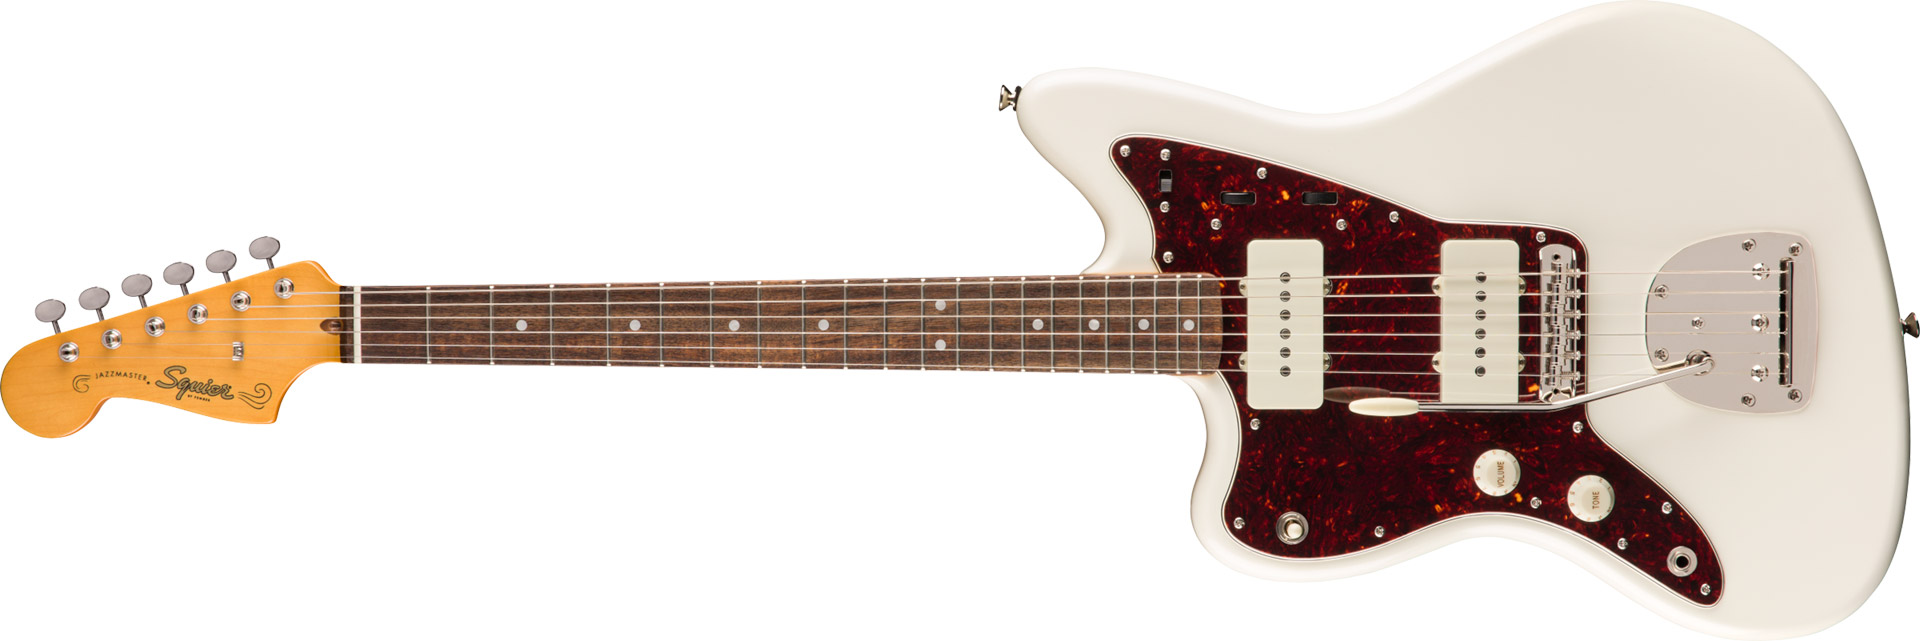 GUITARRA FENDER SQUIER CLASSIC VIBE 60S JAZZMASTER LH LR - 037-4085-505 - OLYMPIC WHITE